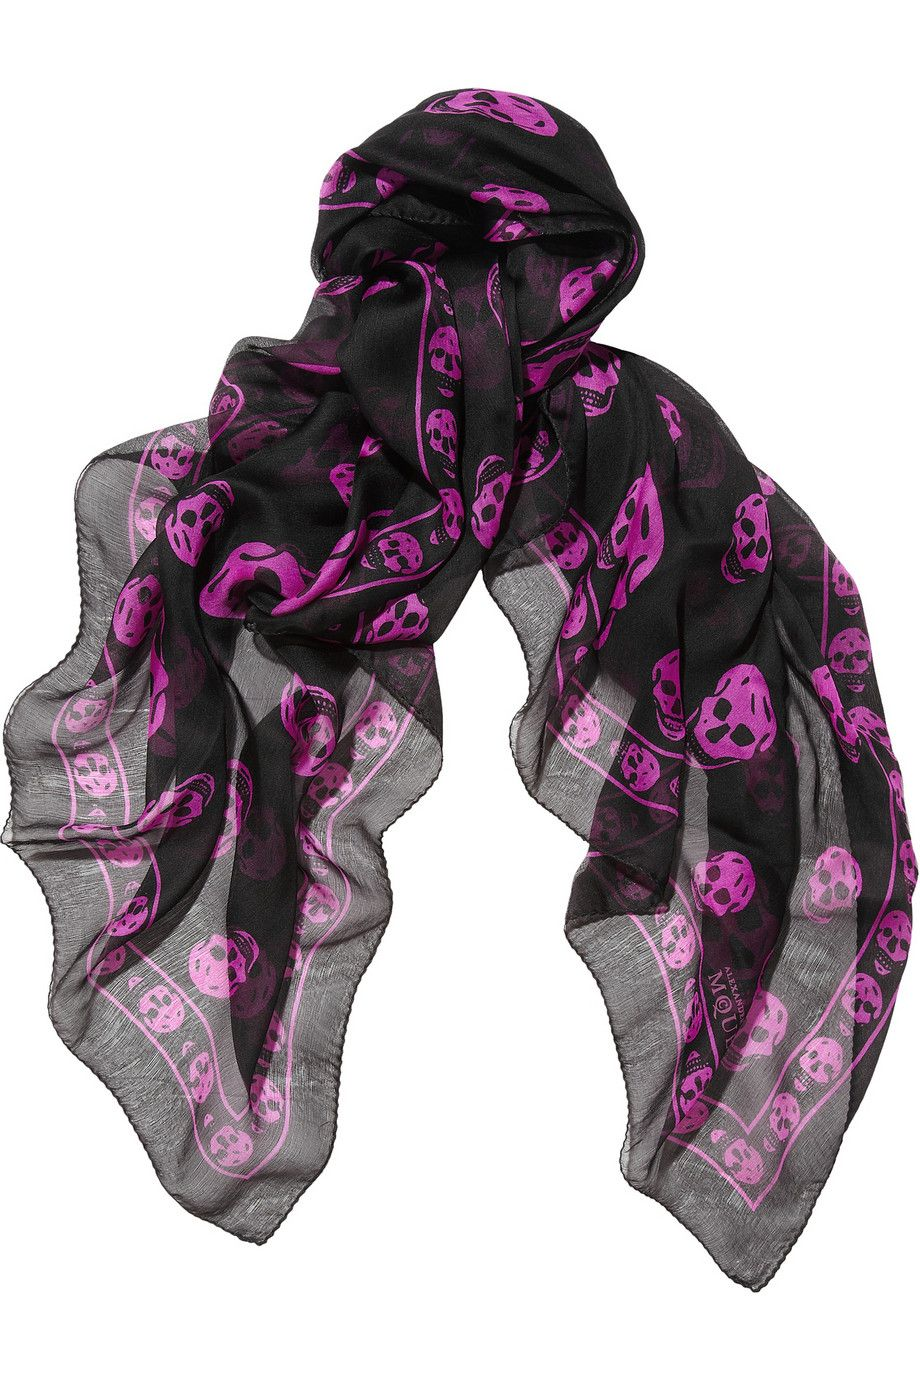 Alexander McQueen | Skull-print silk-chiffon scarf | Black/Purple | I'm really into folding light weight scarves as thick head bands to keep warm.